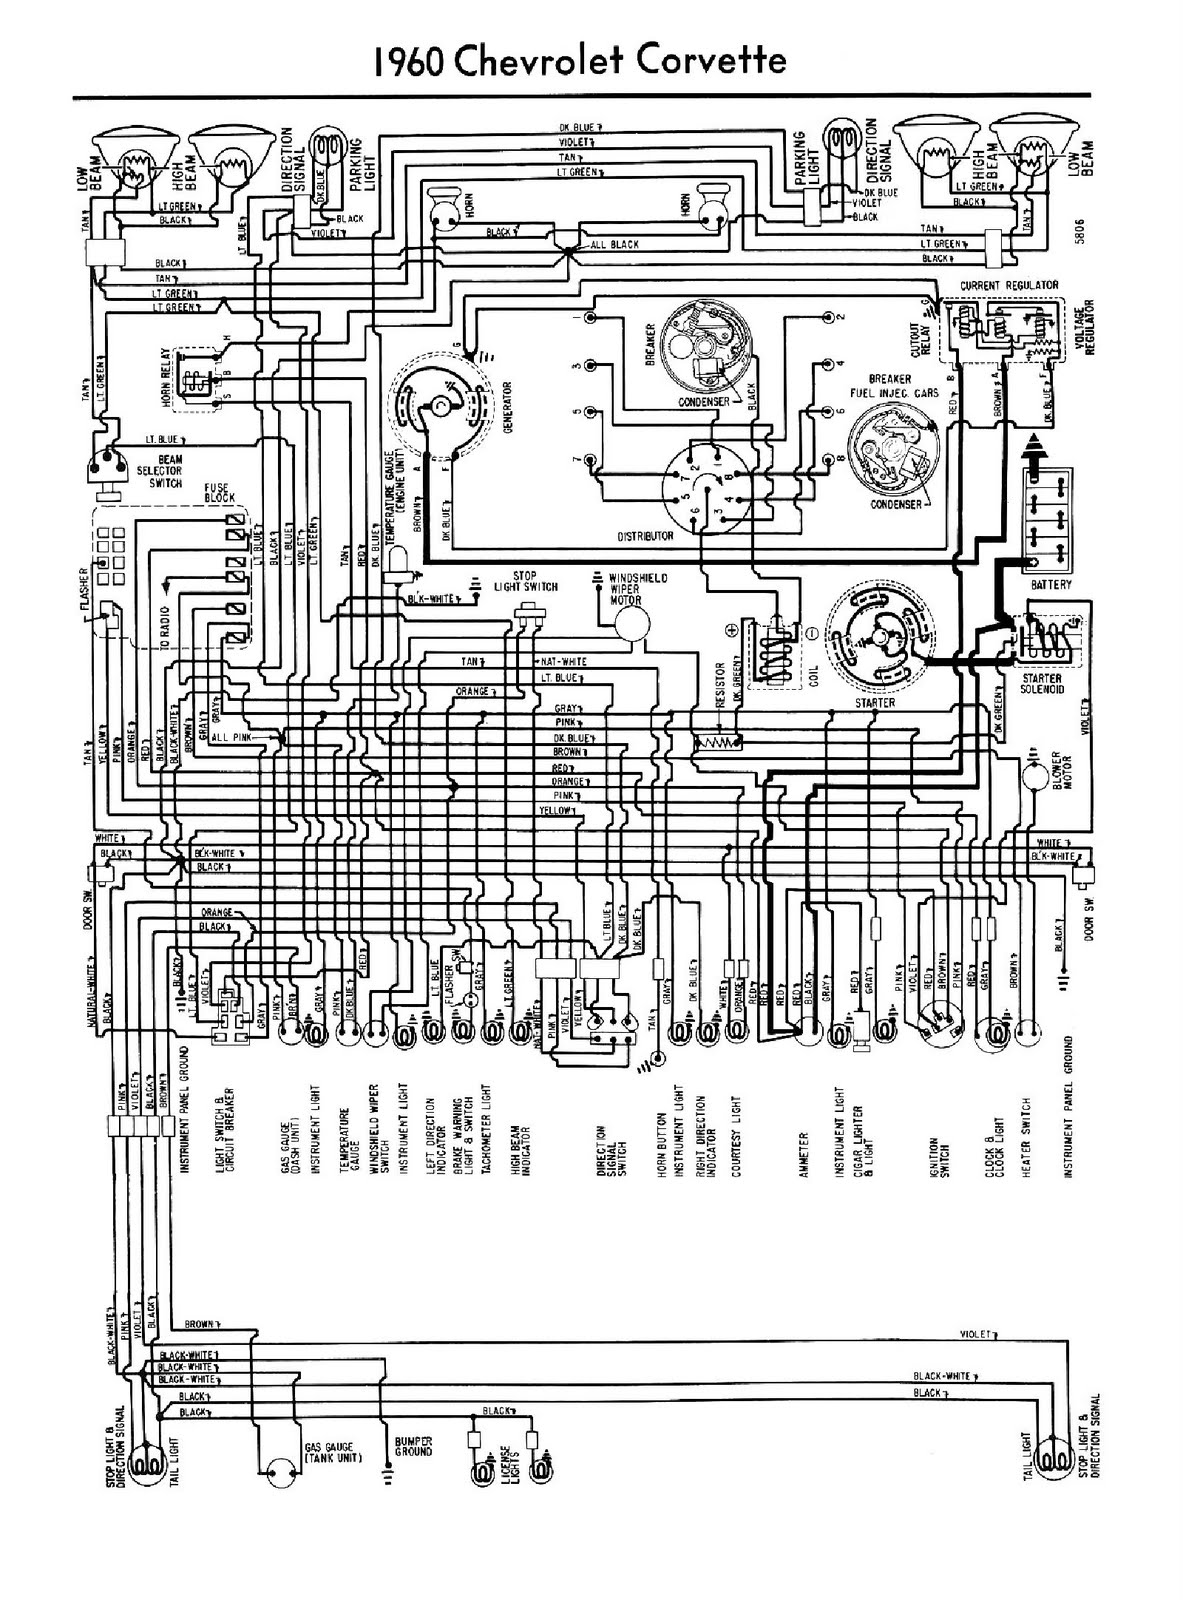 1960 Impala Horn Diagram Wiring Schematic - Product Wiring Diagrams •